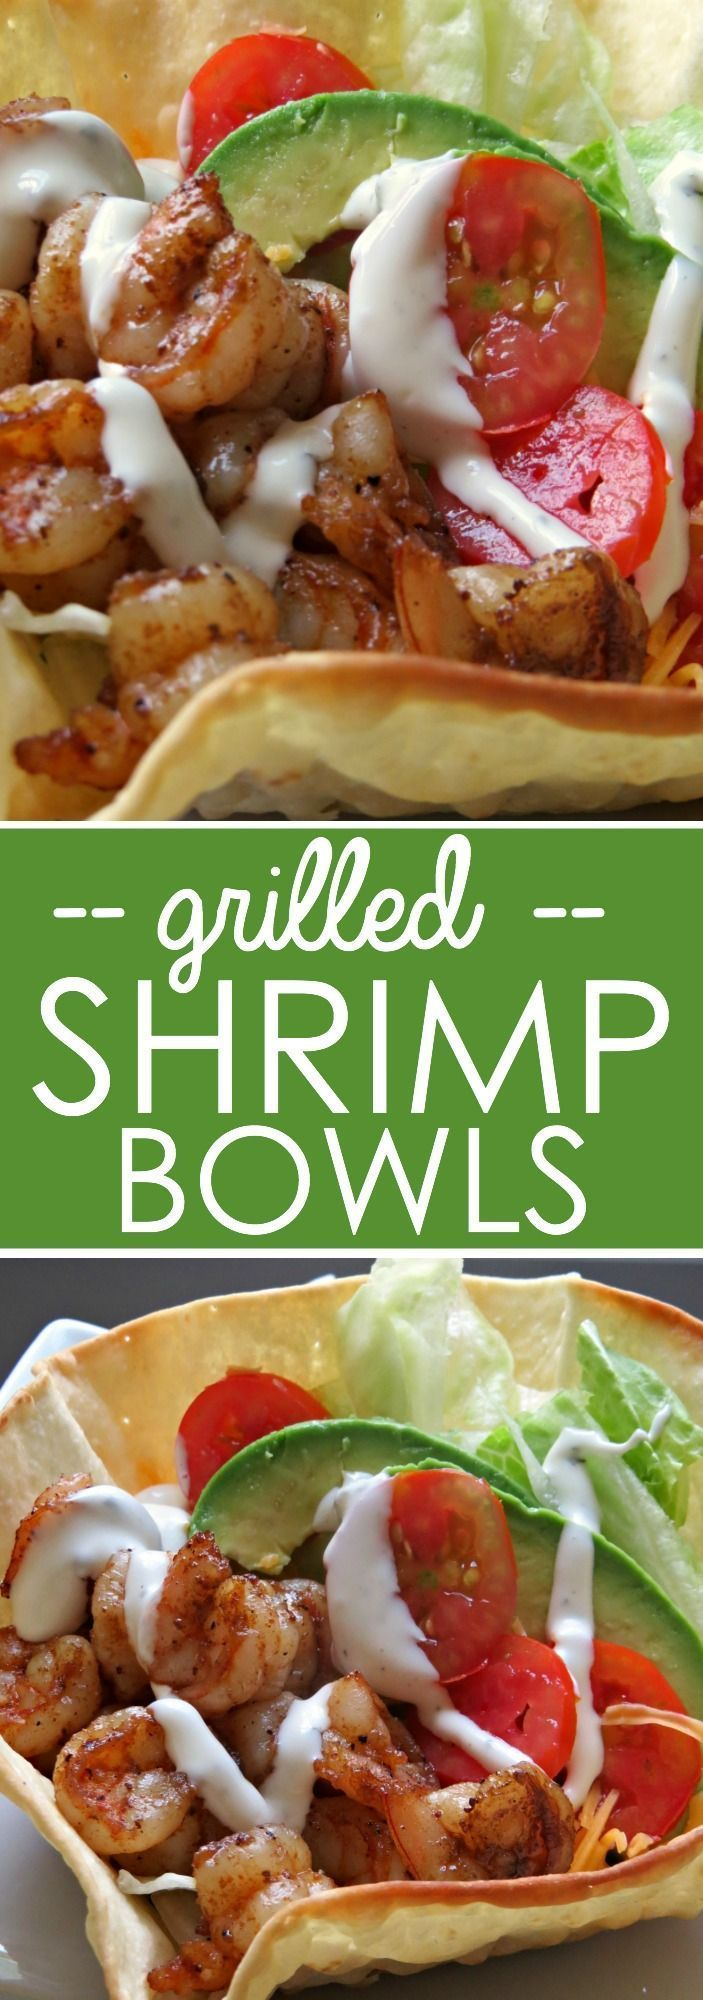 grilled shrimp recipes Delicious grilled shrimp bowl recipe that is an easy recipe you will love!